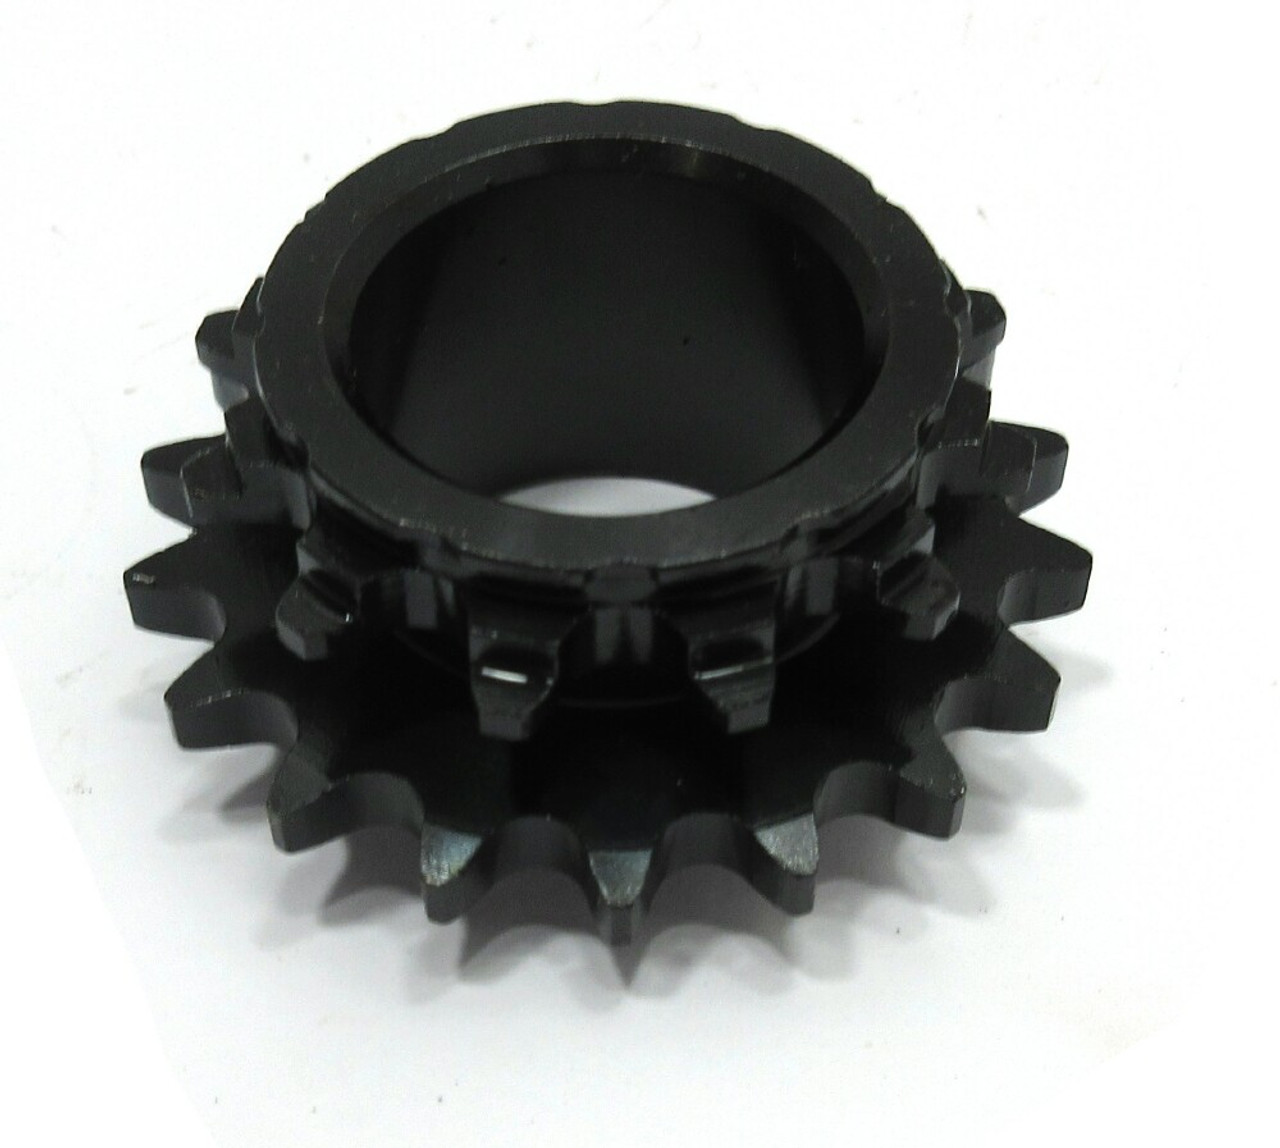 Hilliard Extreme Clutch 20 Tooth 219 Chain Sprocket - Needle Bearing Style